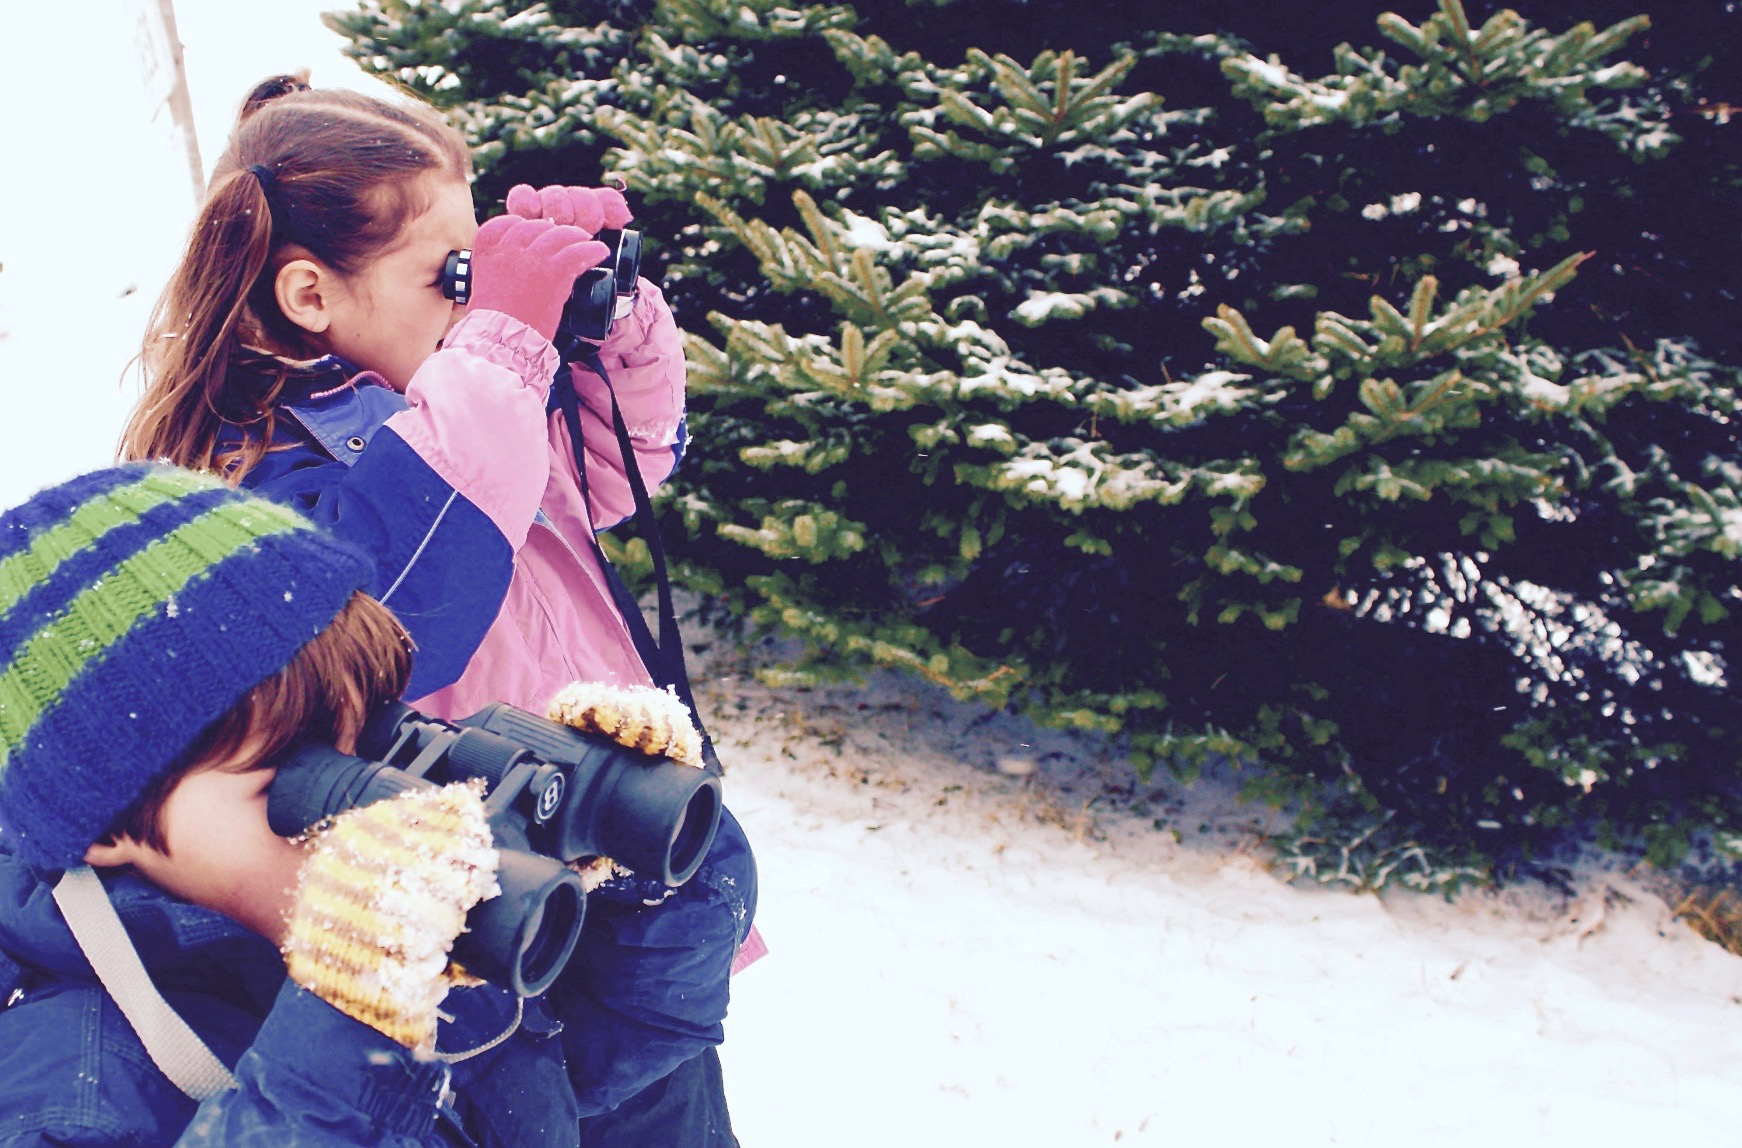 Winter Outdoor Learning Experiences Kids